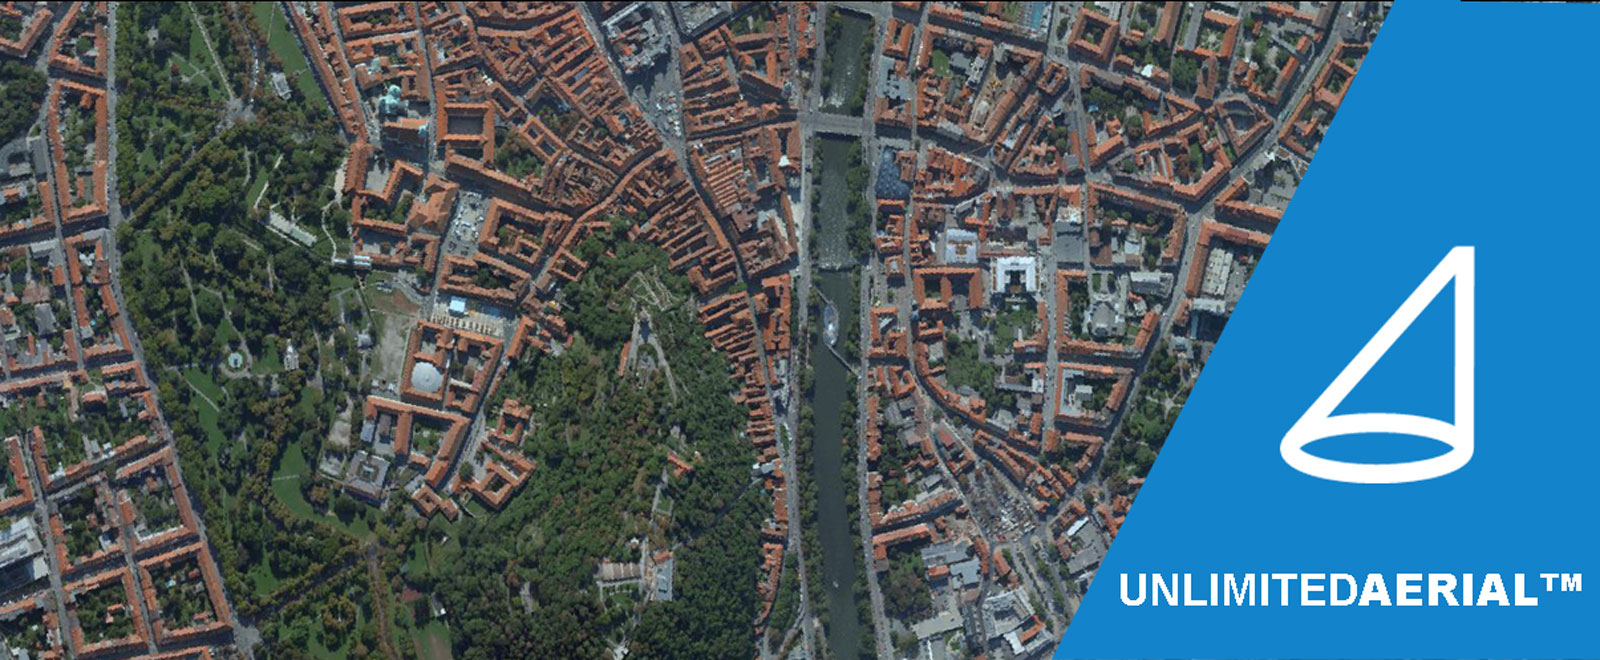 FROM AERIAL IMAGES TO TRUE-ORTHOPHOTOS AND DIGITAL SURFACE MODELS